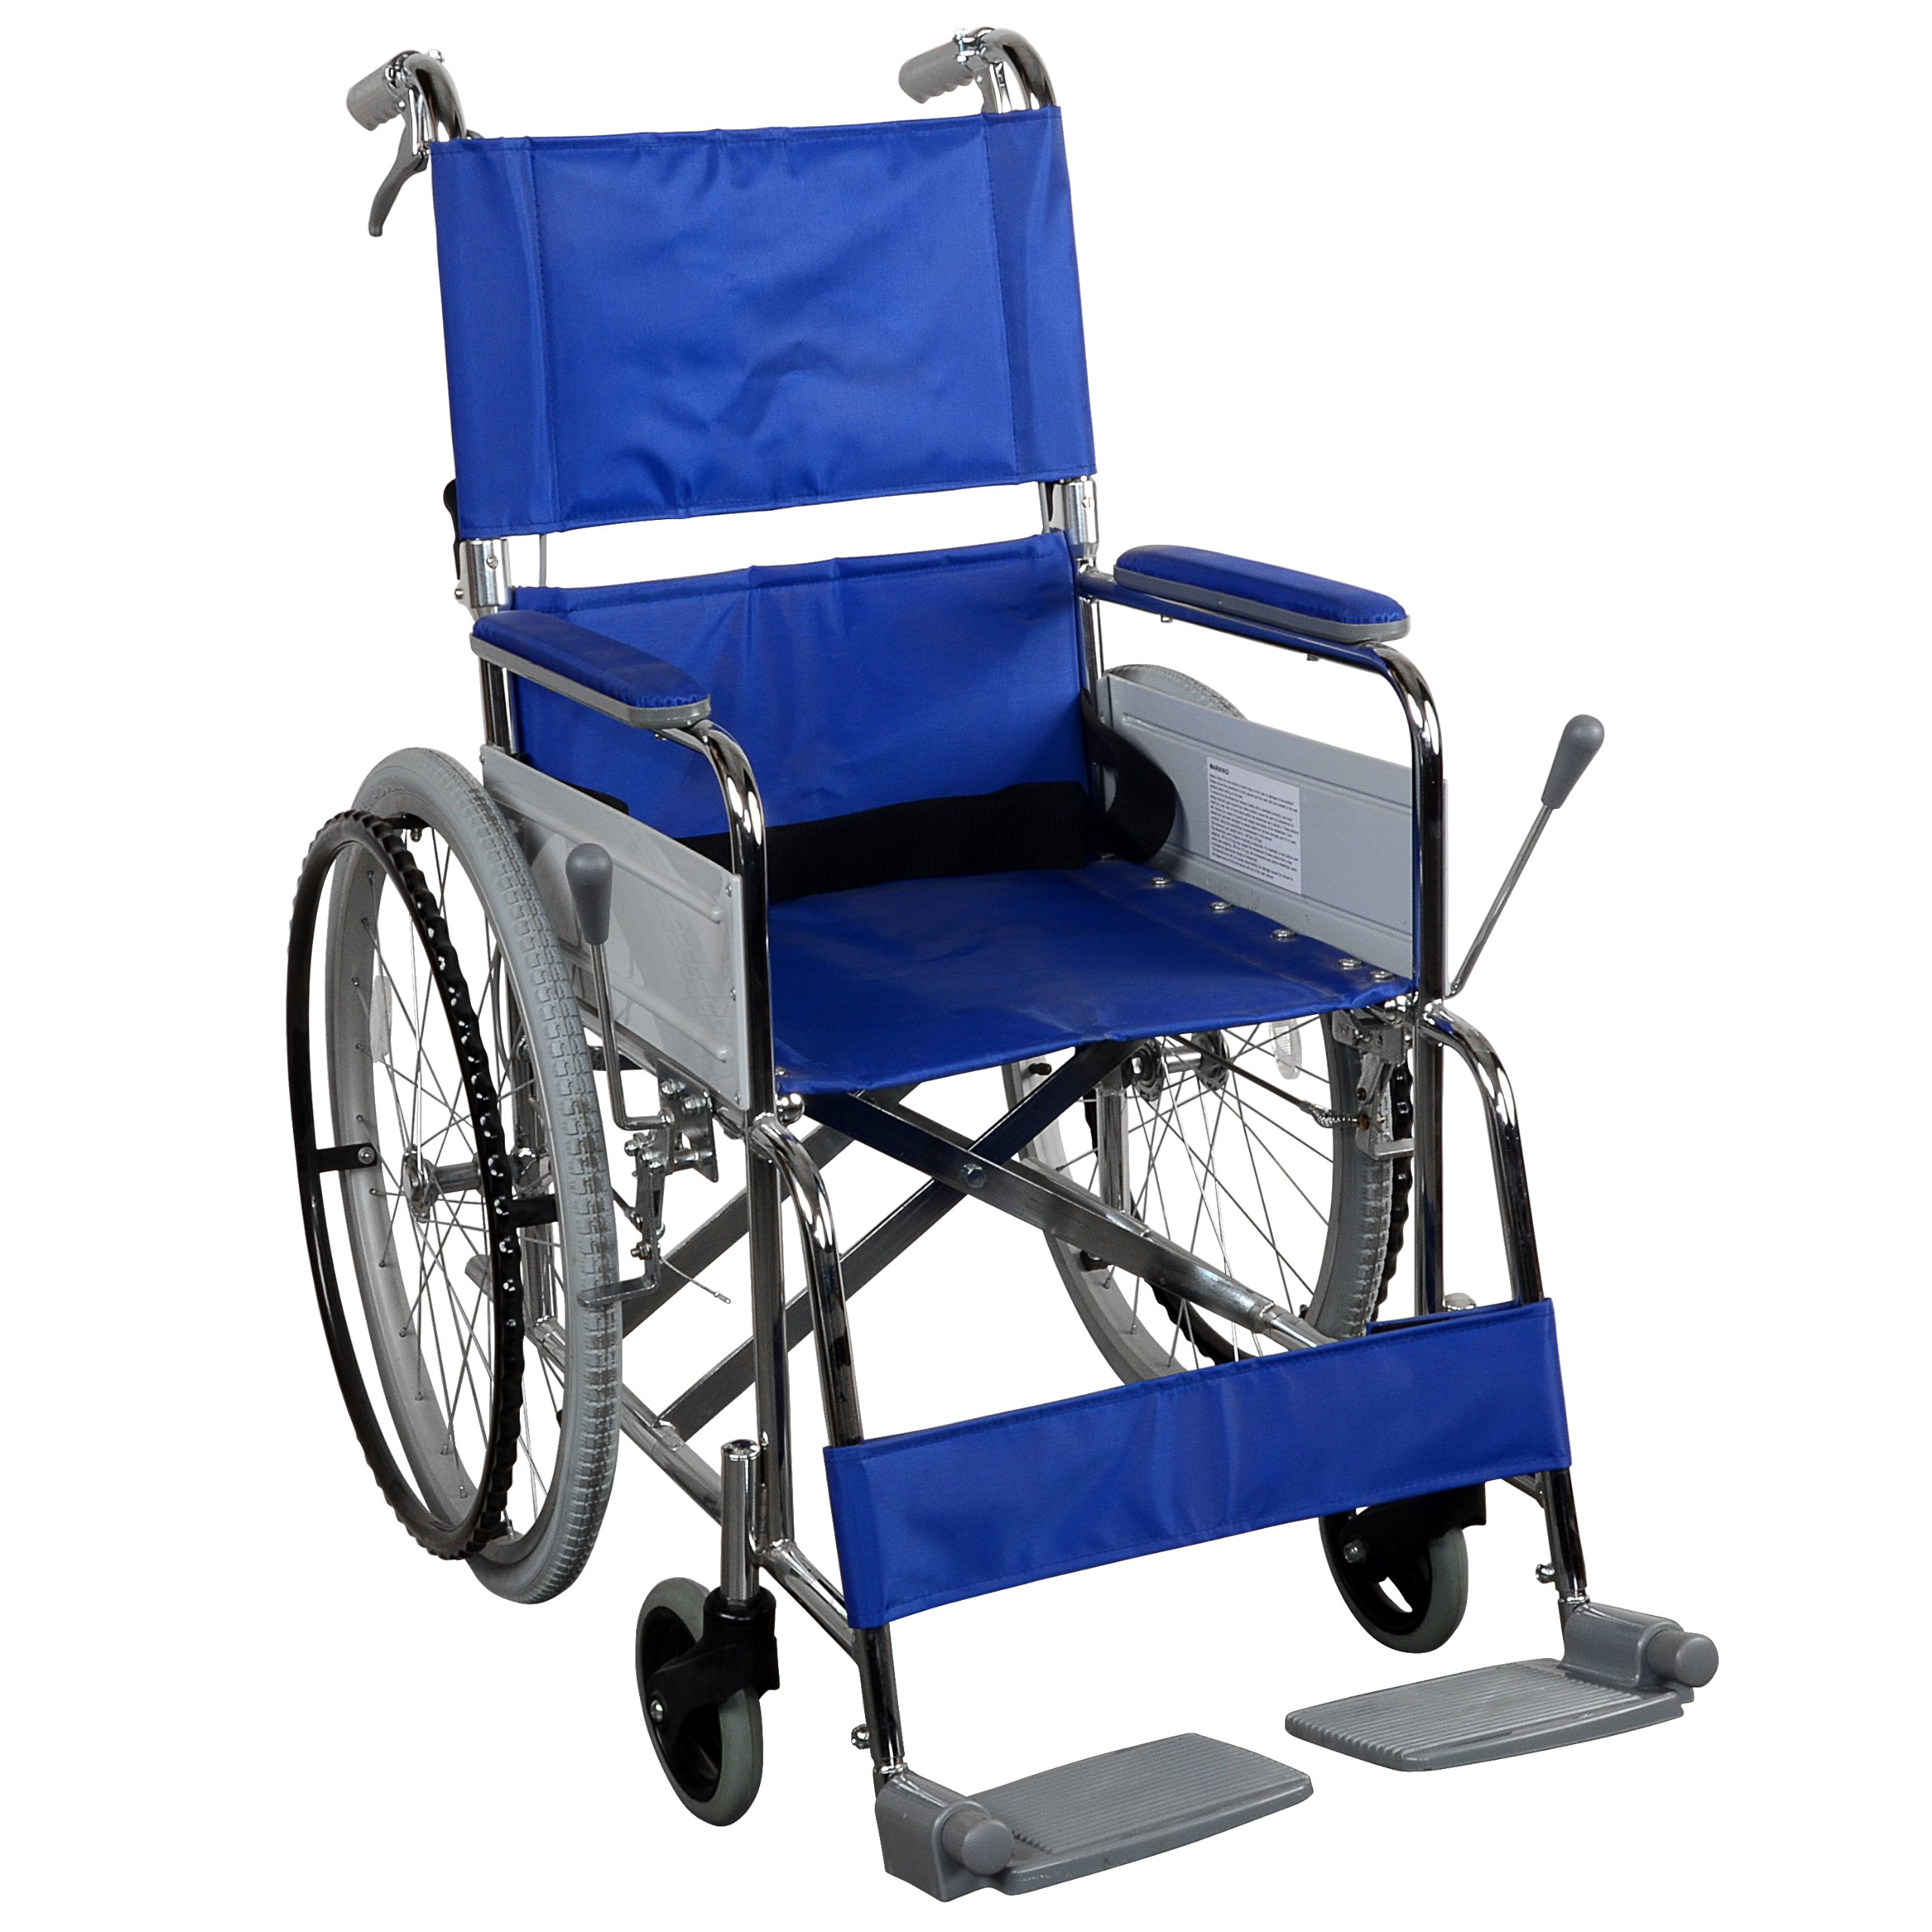 Cycle Force Manual Wheelchair with Attendant Operated Brakes, Blue